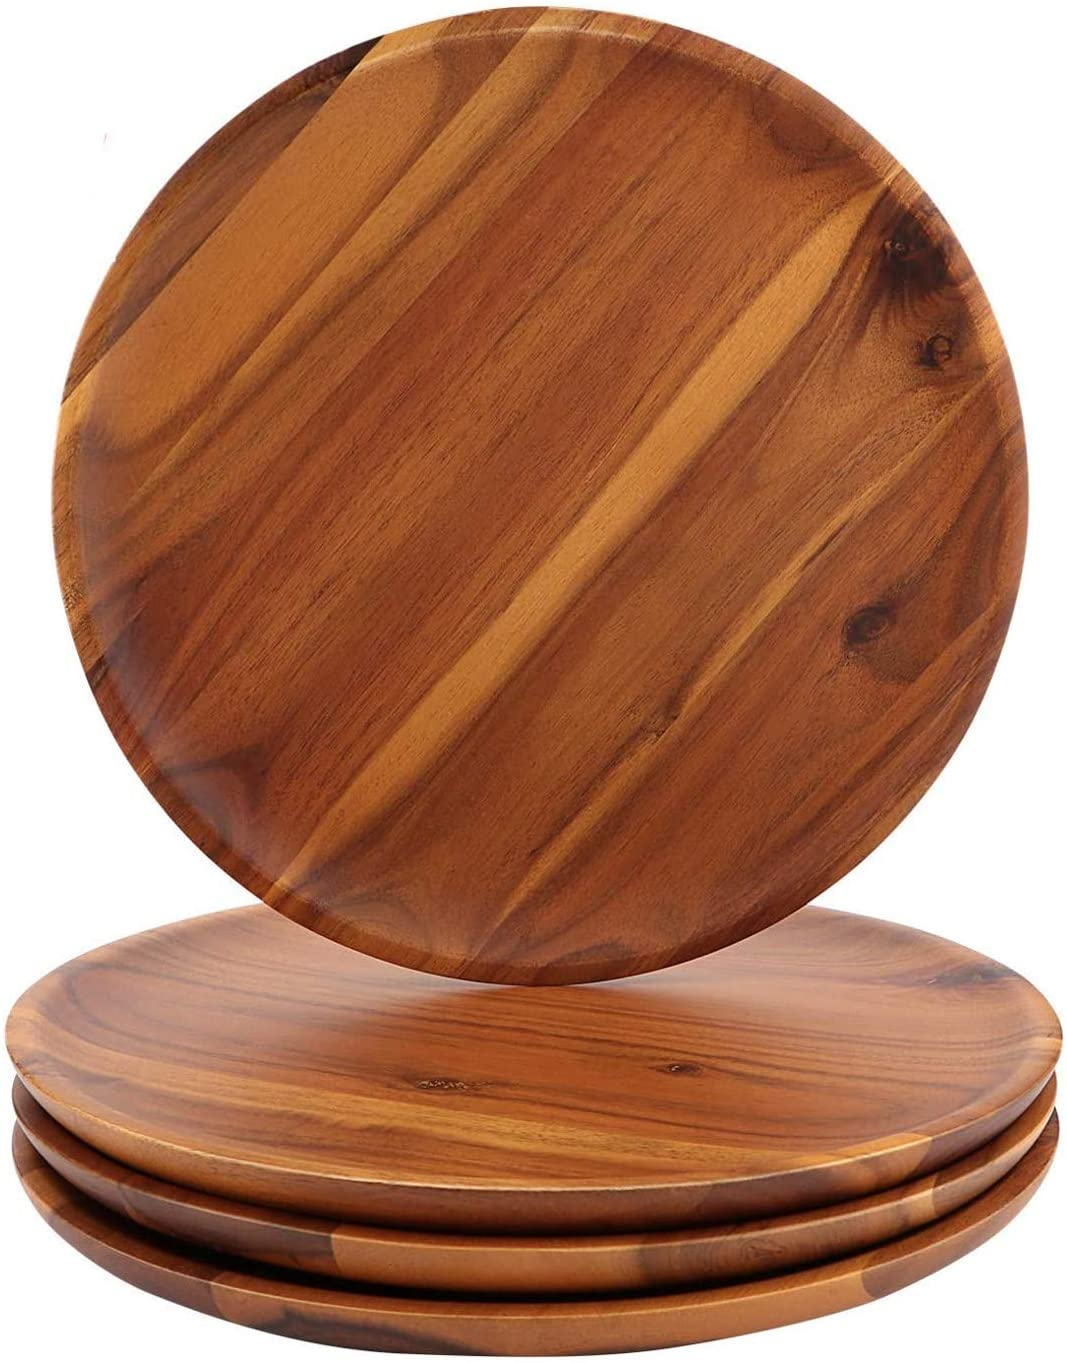 AIDEA Acacia Max 78% OFF Outlet SALE Wood Dinner Plates 8Inch Set of Round